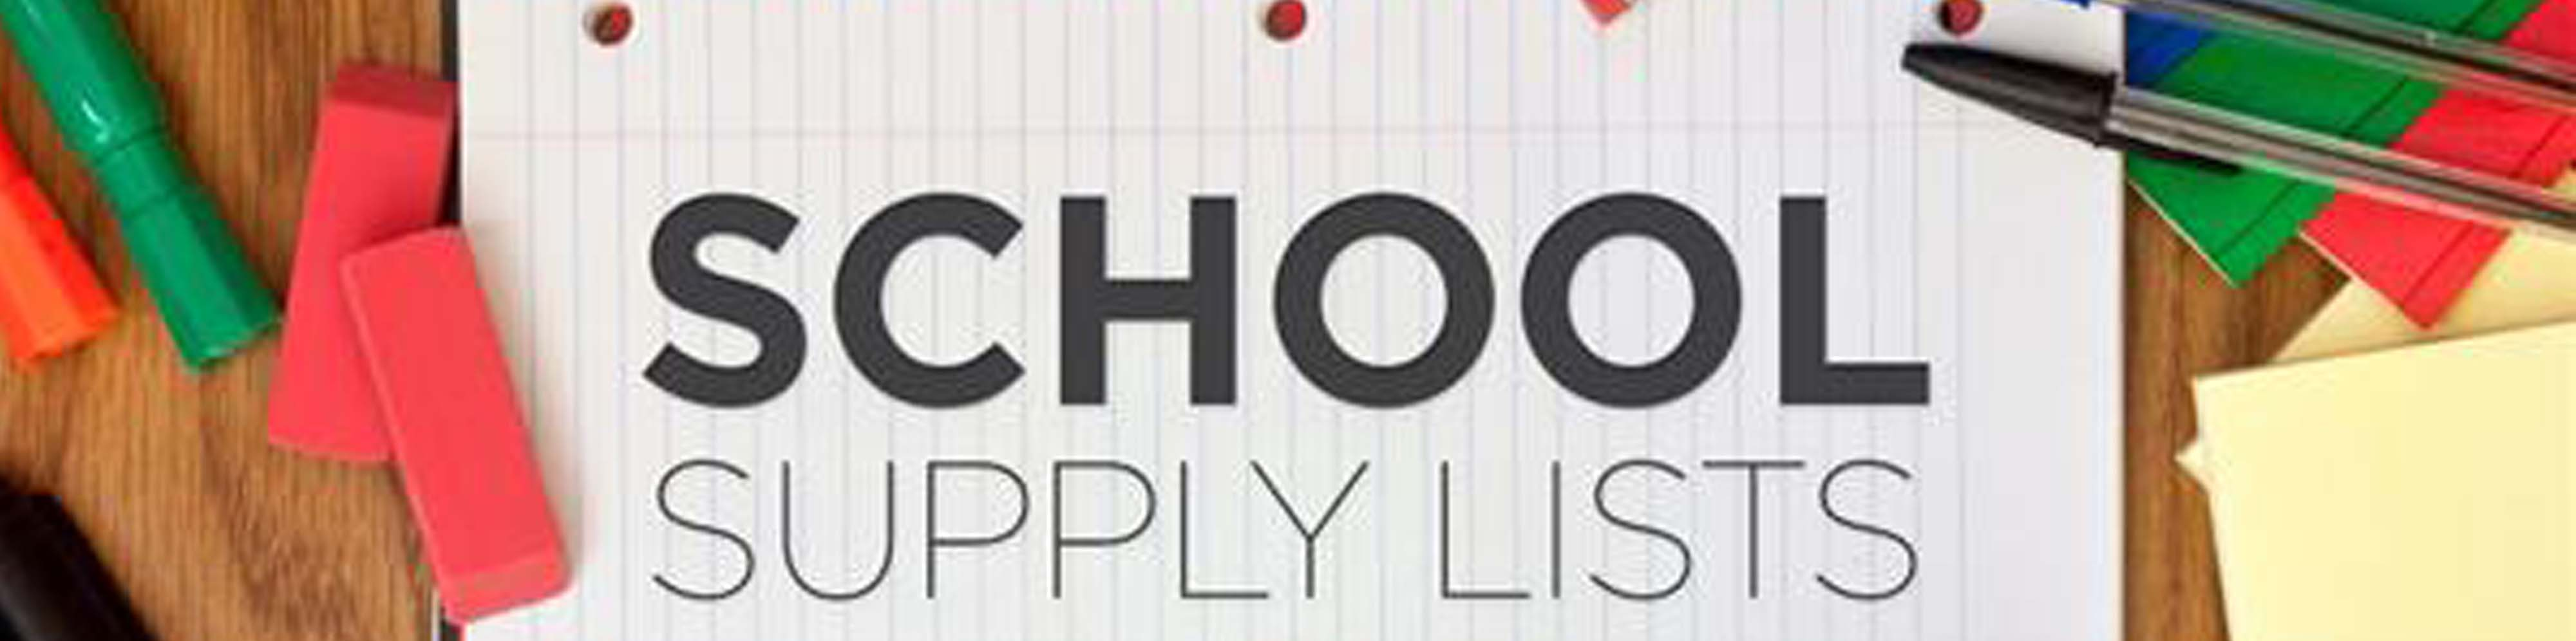 School-Supply-Banner-1